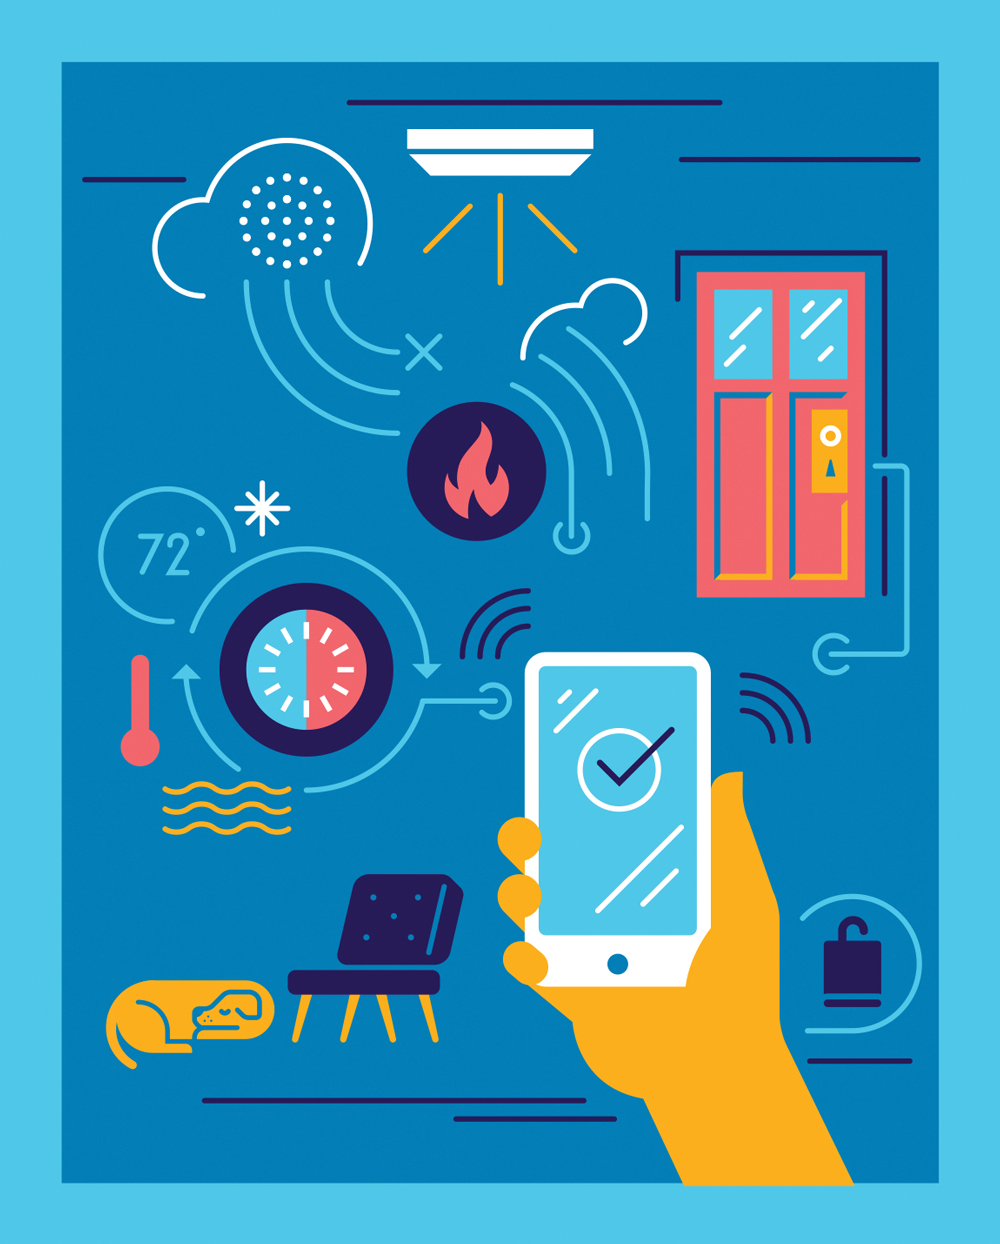 Best Home Upgrades: Making A Smart Home? The Best Upgrades Are Simple And Won